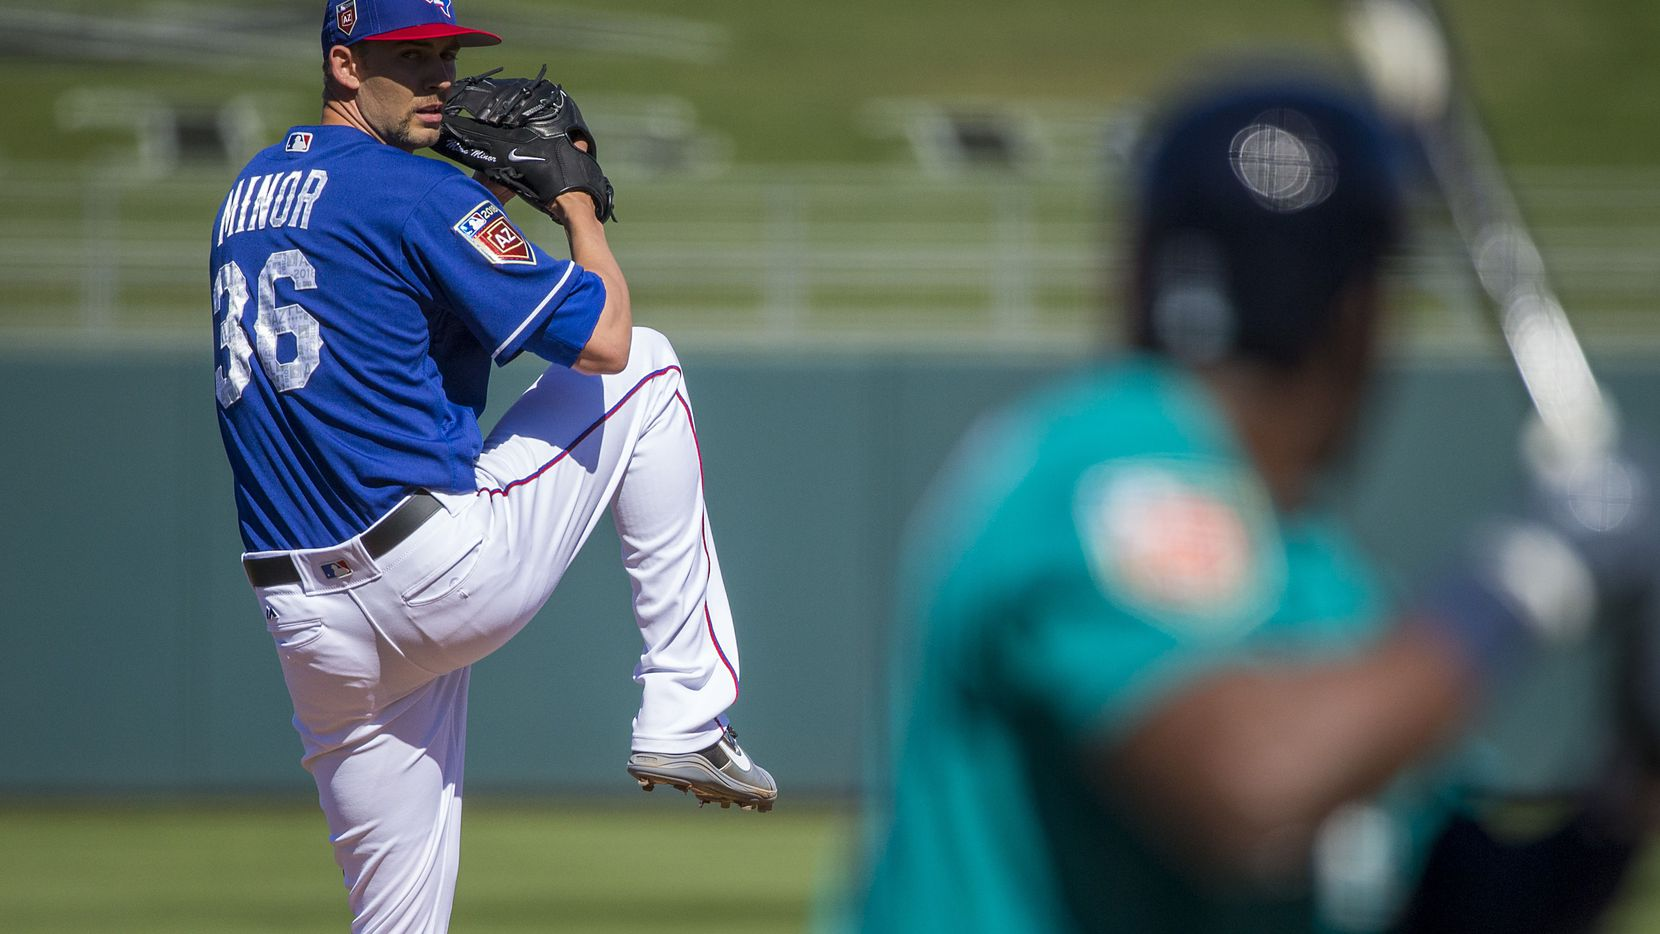 Texas Rangers pitcher Mike Minor pitches during the fourth inning of a spring training baseball game against the Seattle Mariners on Sunday, March 4, 2018, in Surprise, Ariz. (Smiley N. Pool/The Dallas Morning News)